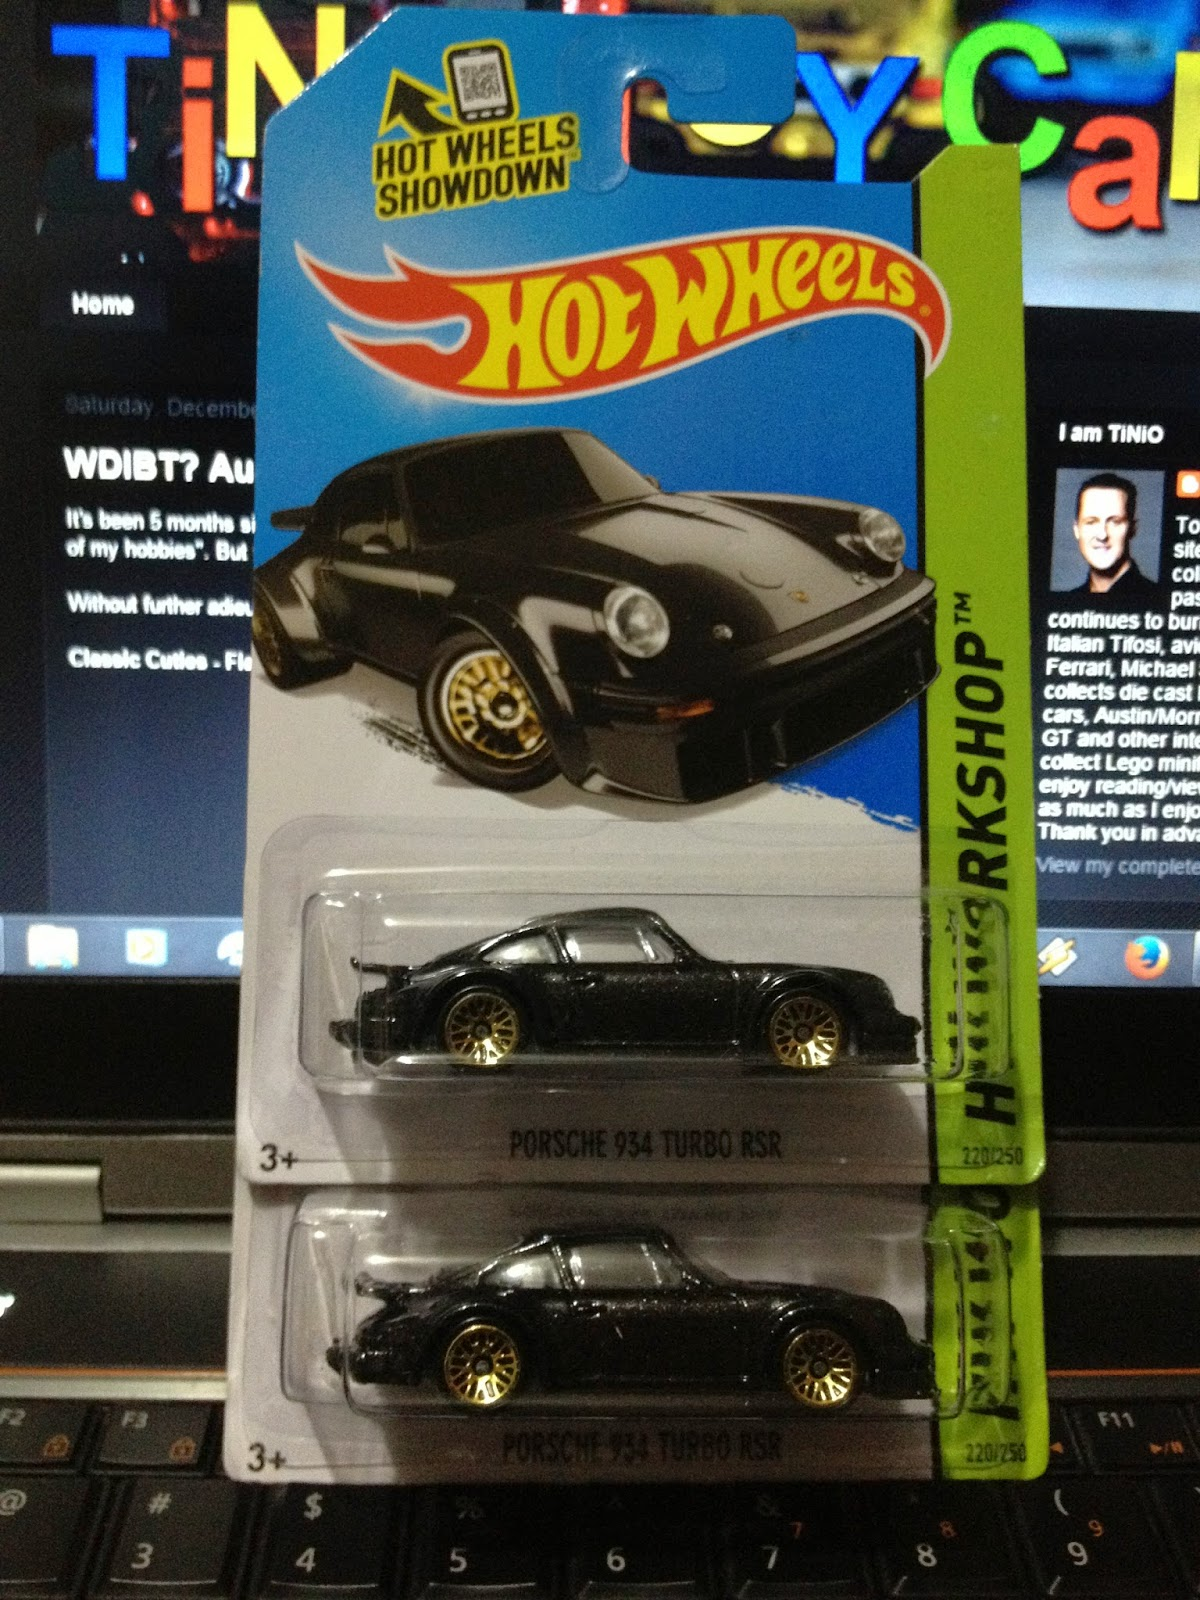 Tinio Toy Cars Hotwheels Elite 143 Ferrari Fxx Michael Schumacher Got A Jdm Green Datsun 620 Pickup Plus Two Red American Muscles For 2015 Blog Project Soon Chevy Copo Camaro And Ford Mustang Gt